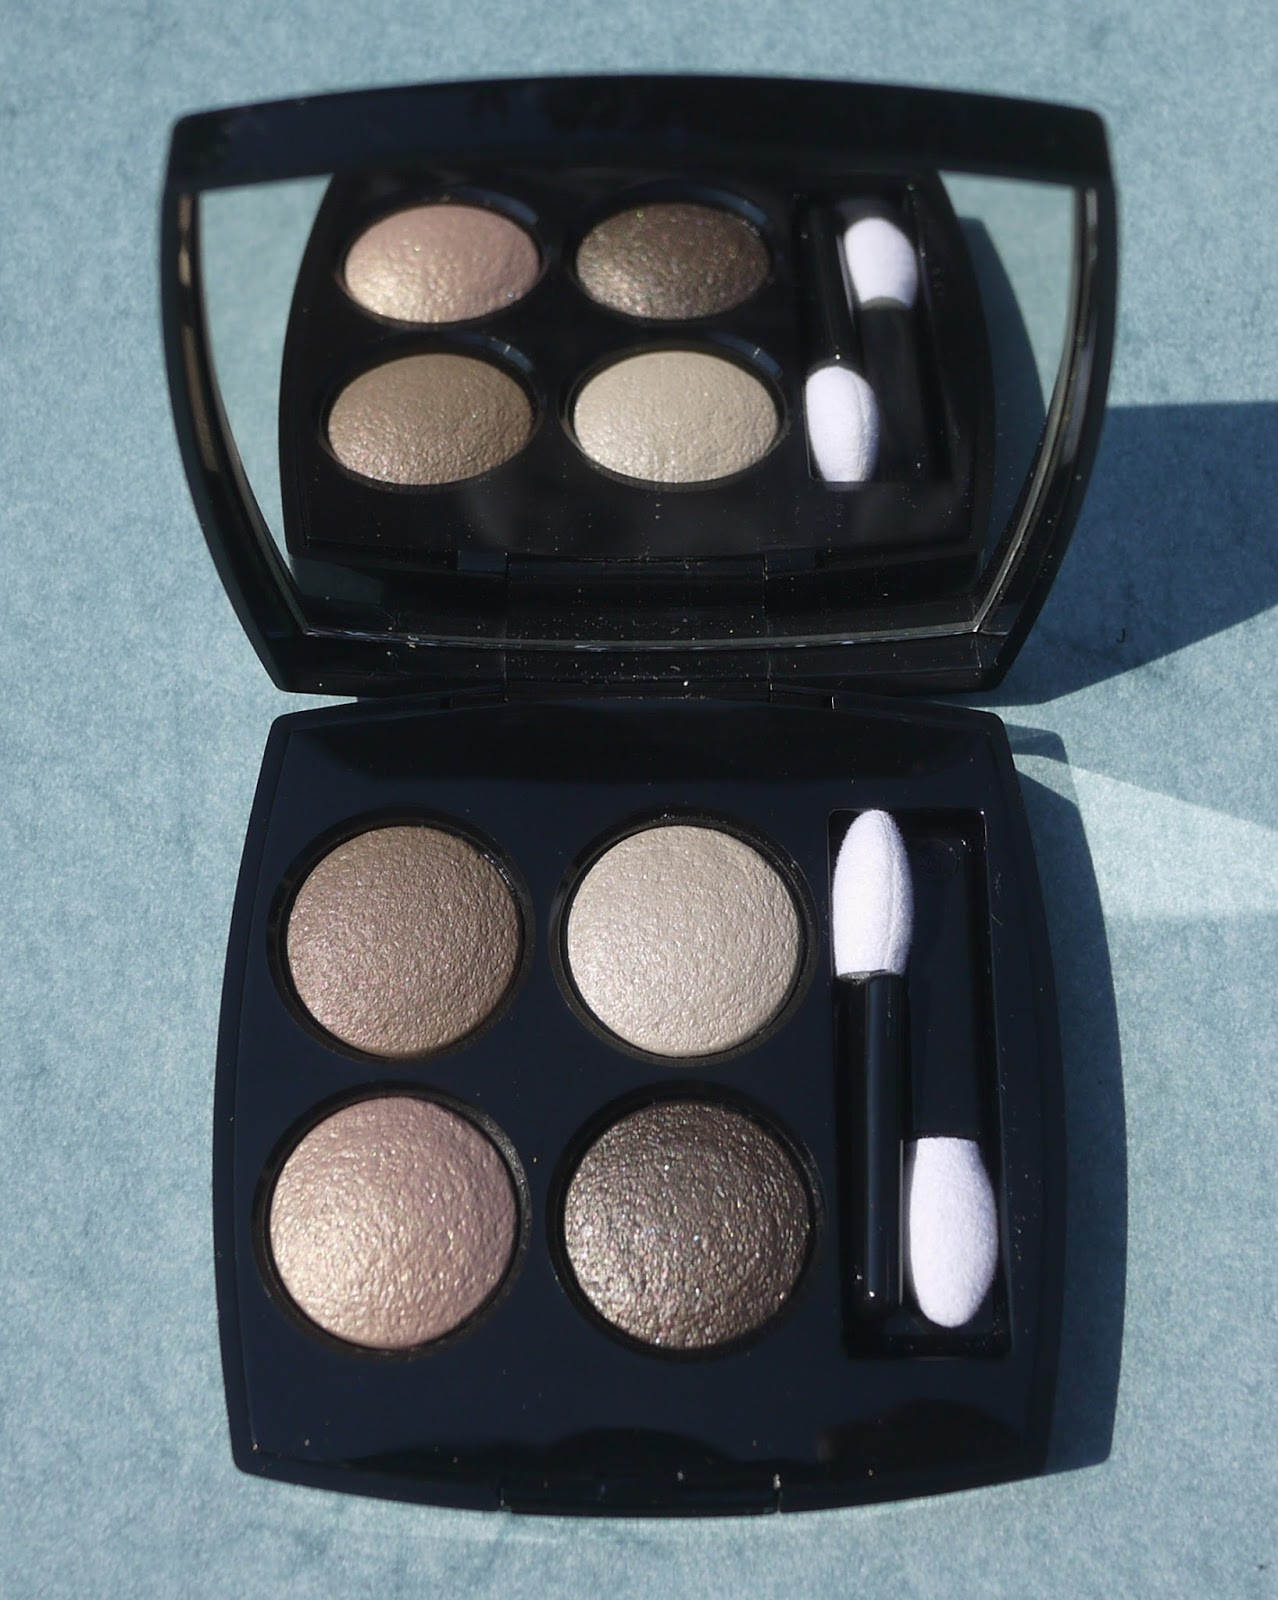 I Took My Photos  Quad And Swatches In Midmorning I Swatched Using A  Spongetipped Applicator And Started With The Taupe In The Upperleft  Corner,